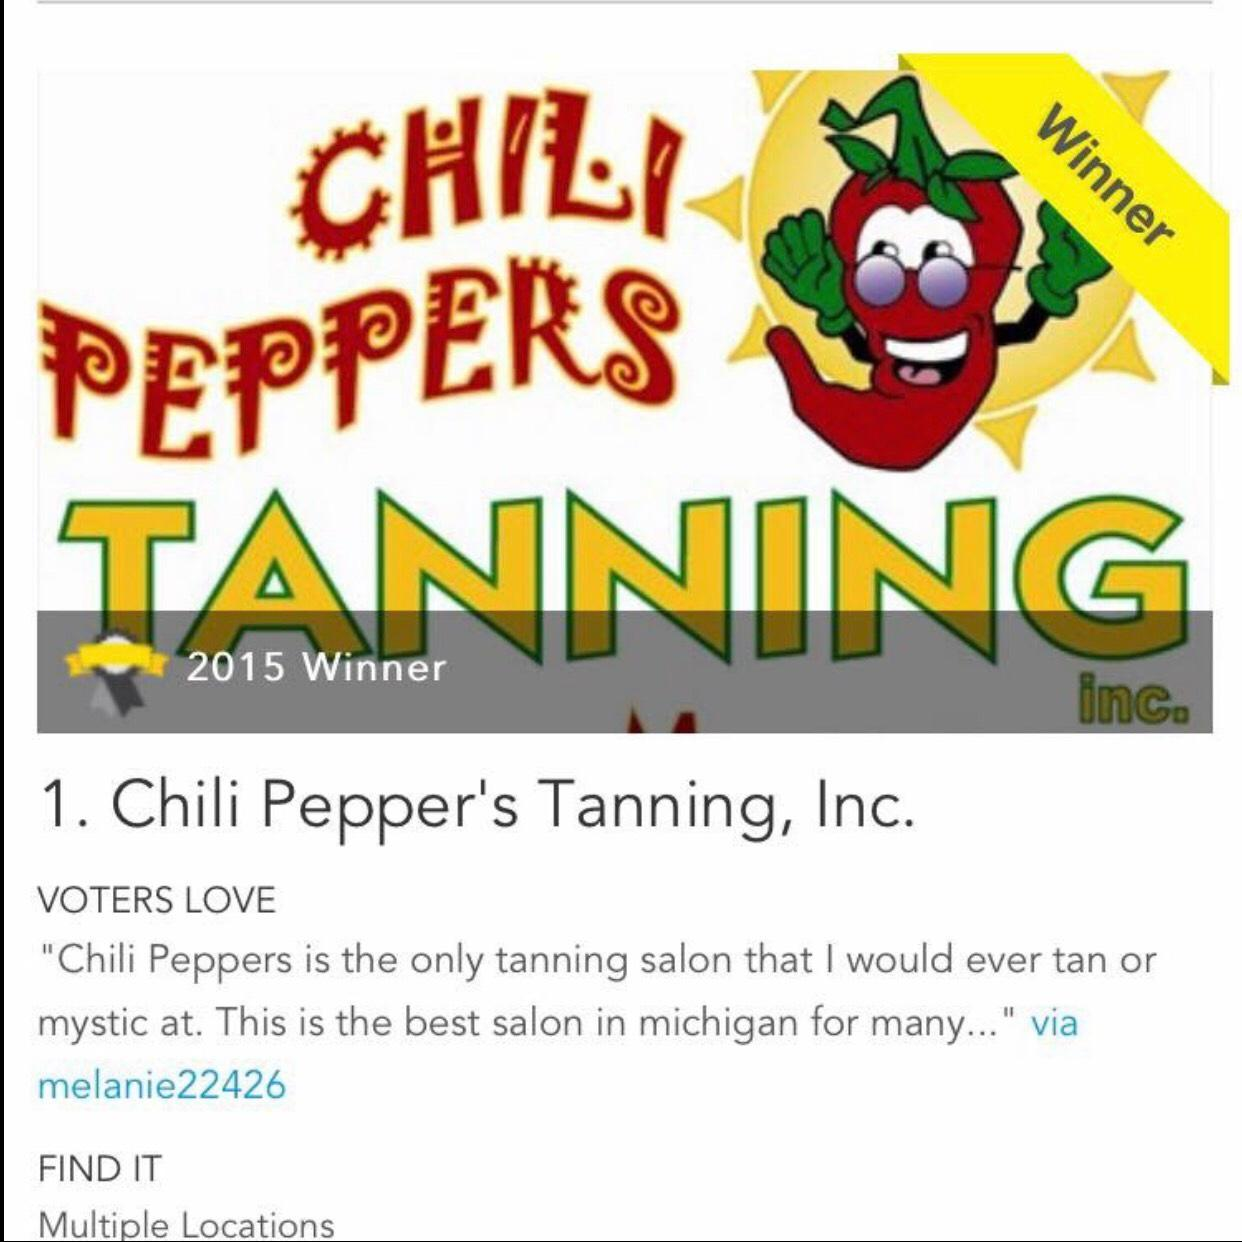 Chili Pepper's Tanning image 8